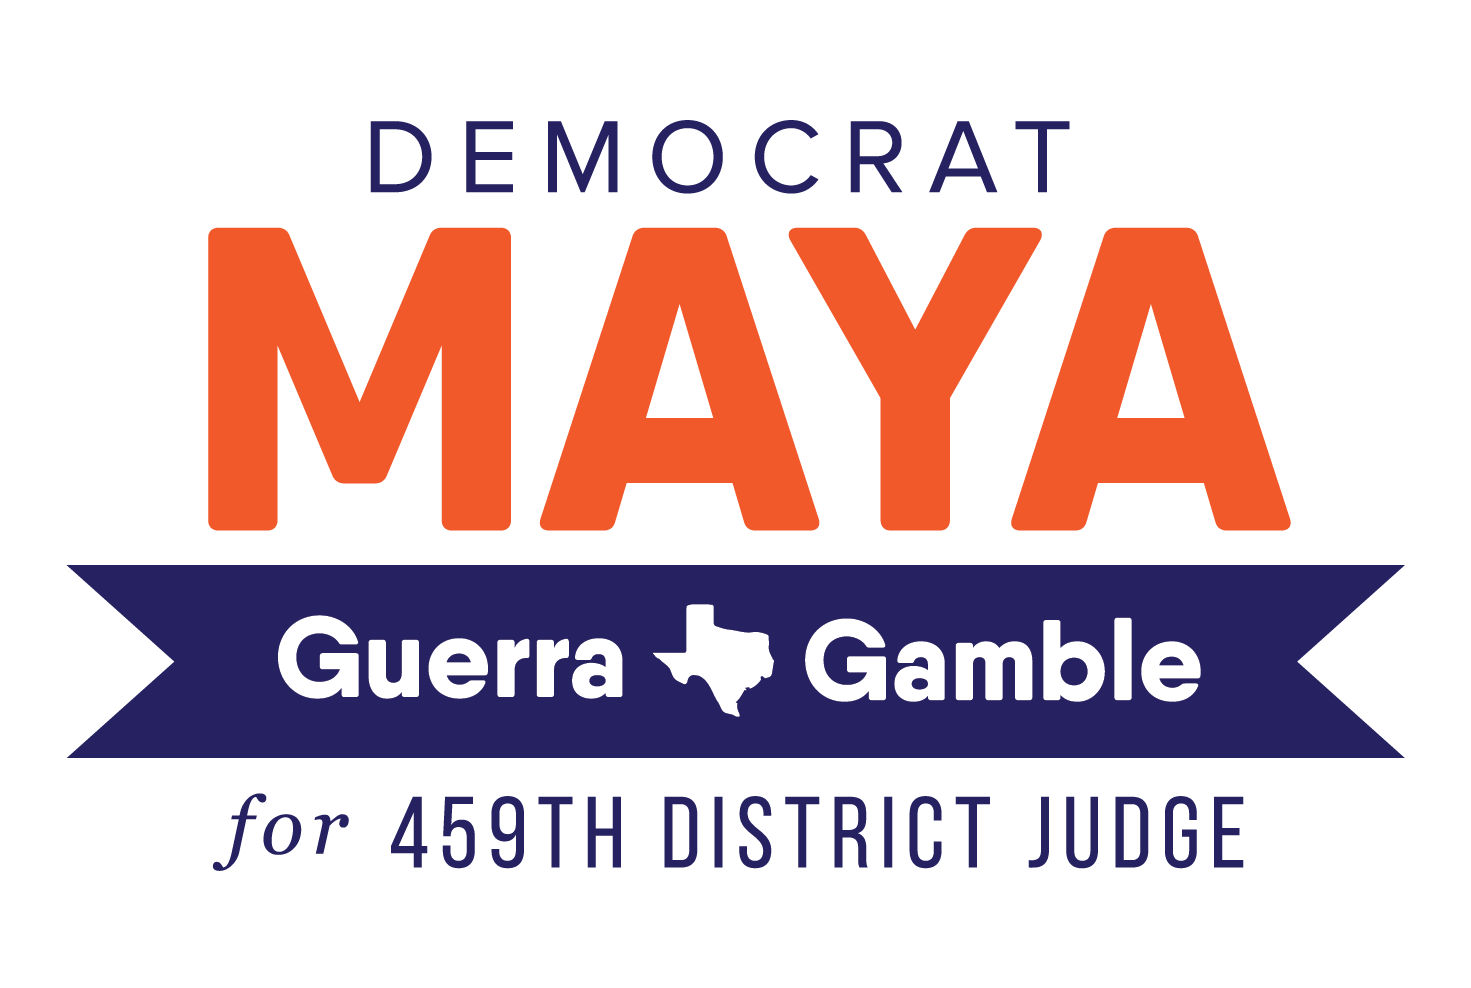 Maya Guerra Gamble For 459th District Court